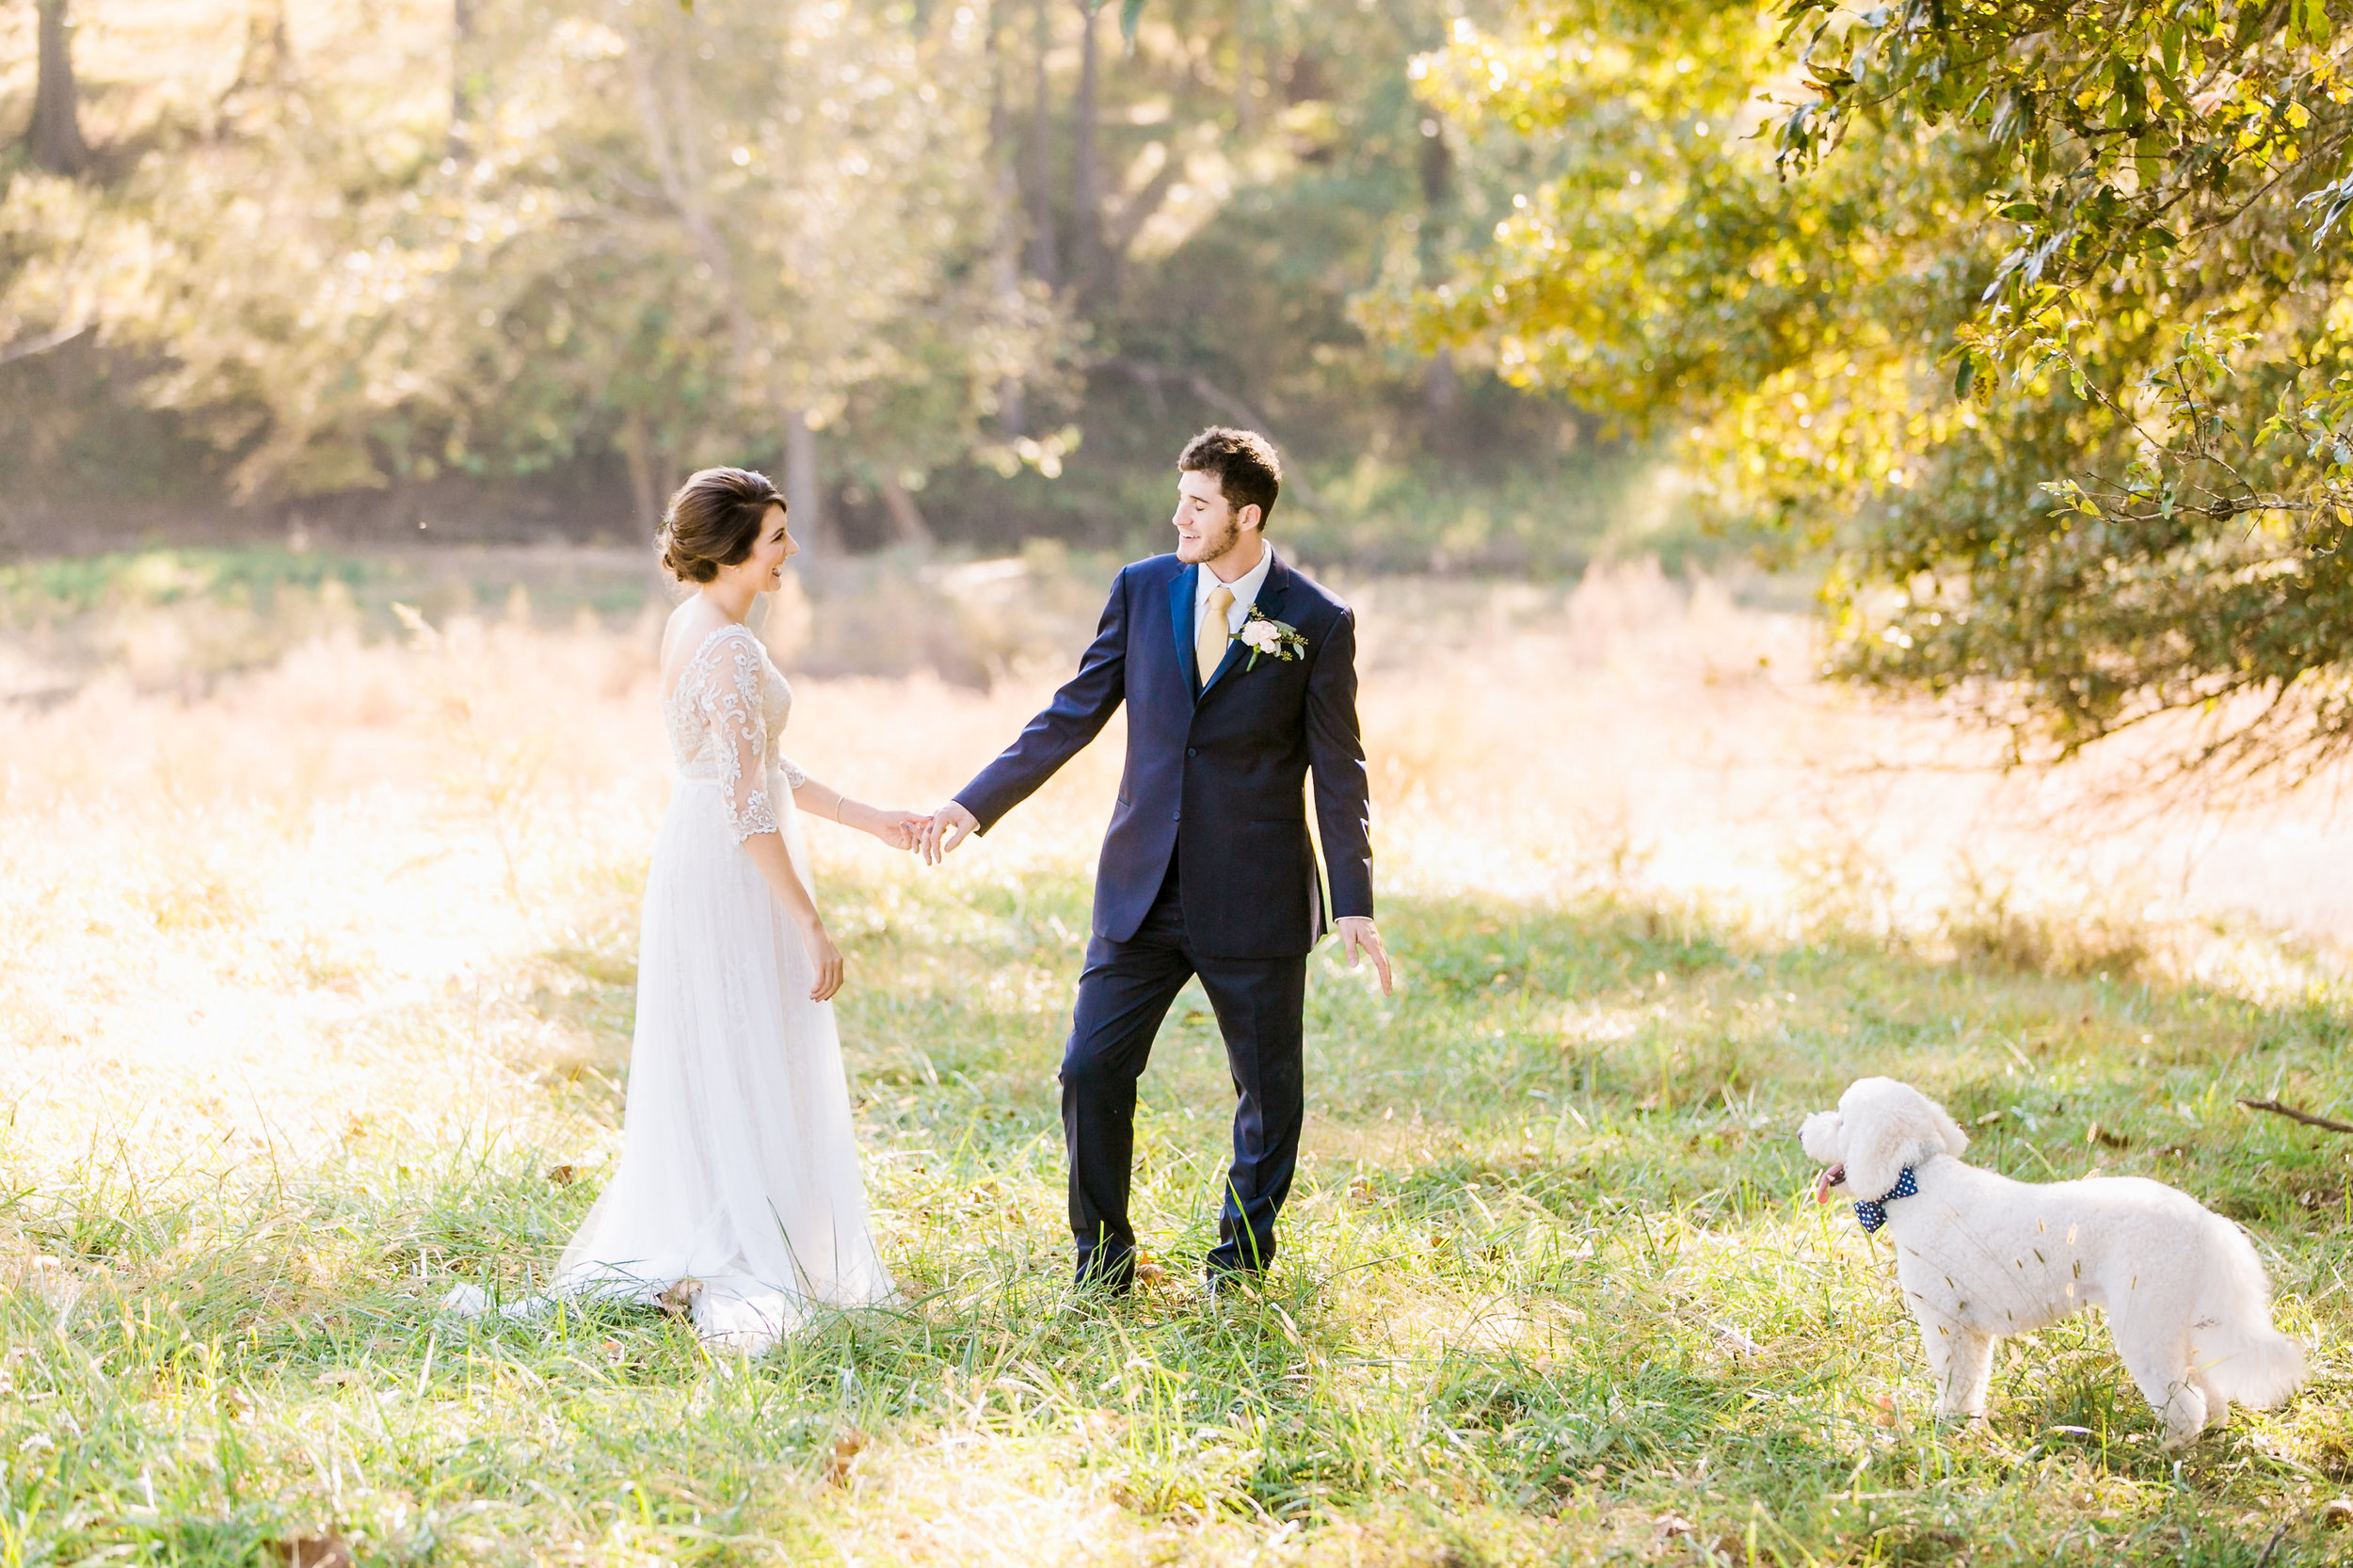 MissouriRusticWedding_StLouisWeddingPhotographer_AliciaDan_CatherineRhodesPhotography-1405-Edit.jpg